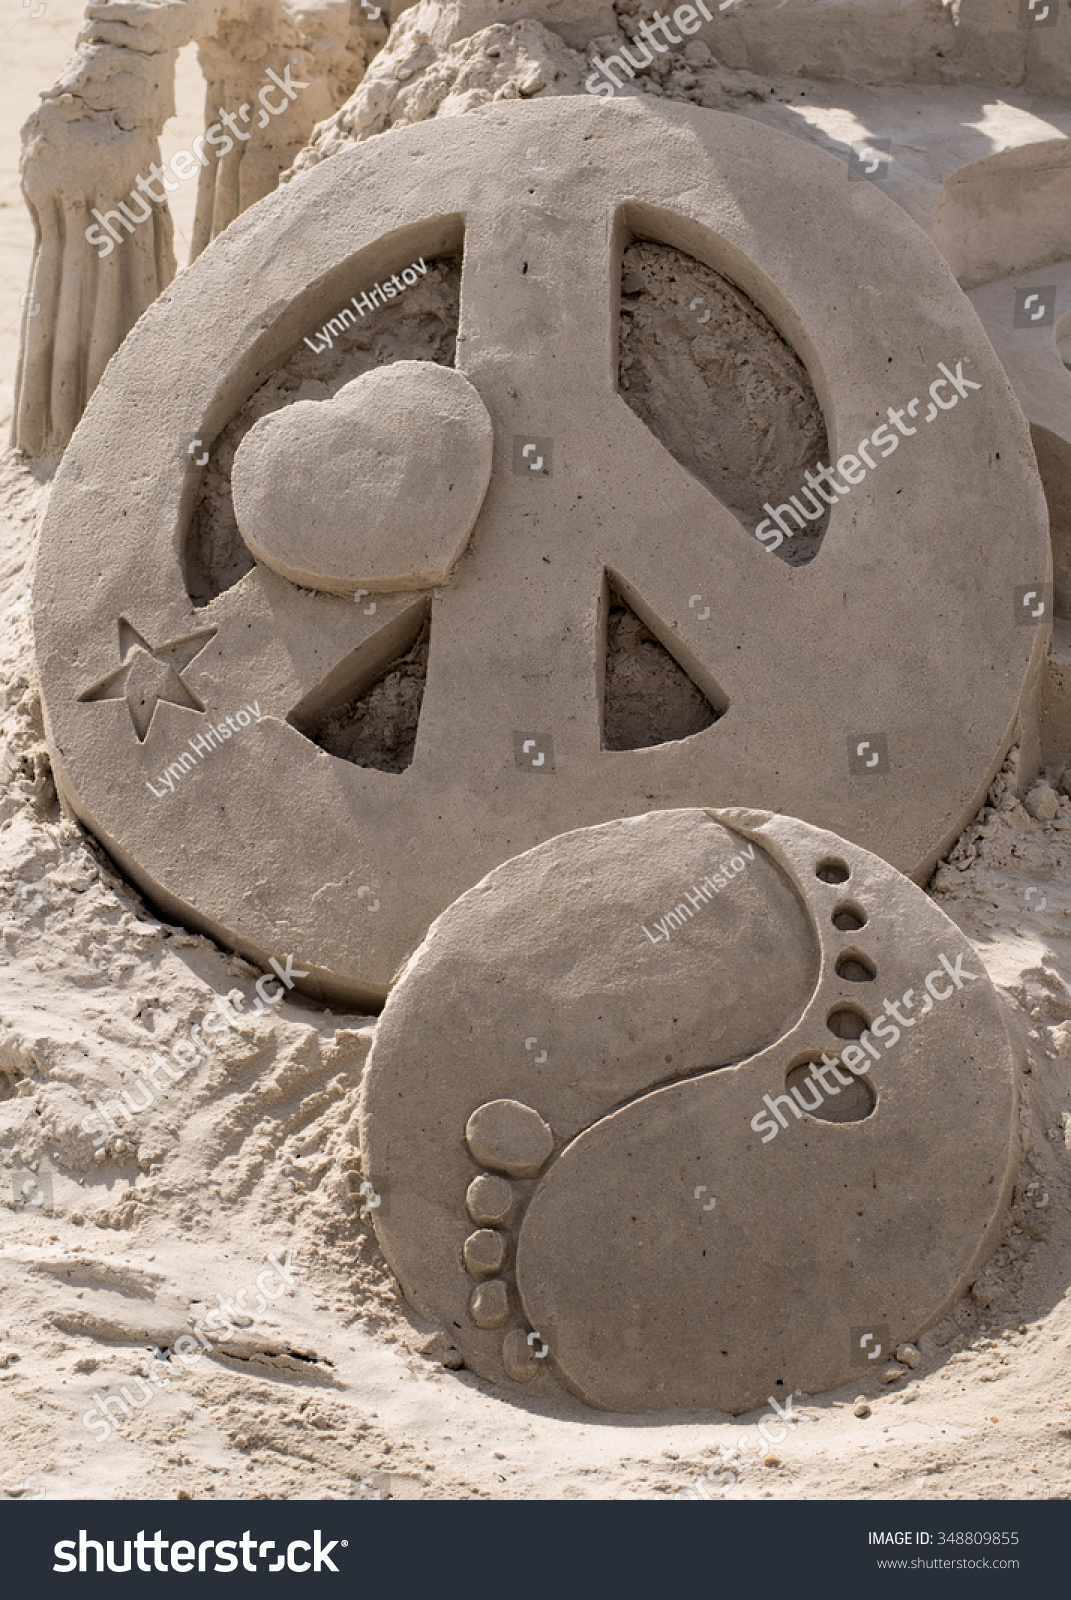 Sand sculpture peace sign heart star stock photo 348809855 sand sculpture of a peace sign heart star and yin yang symbol on fort biocorpaavc